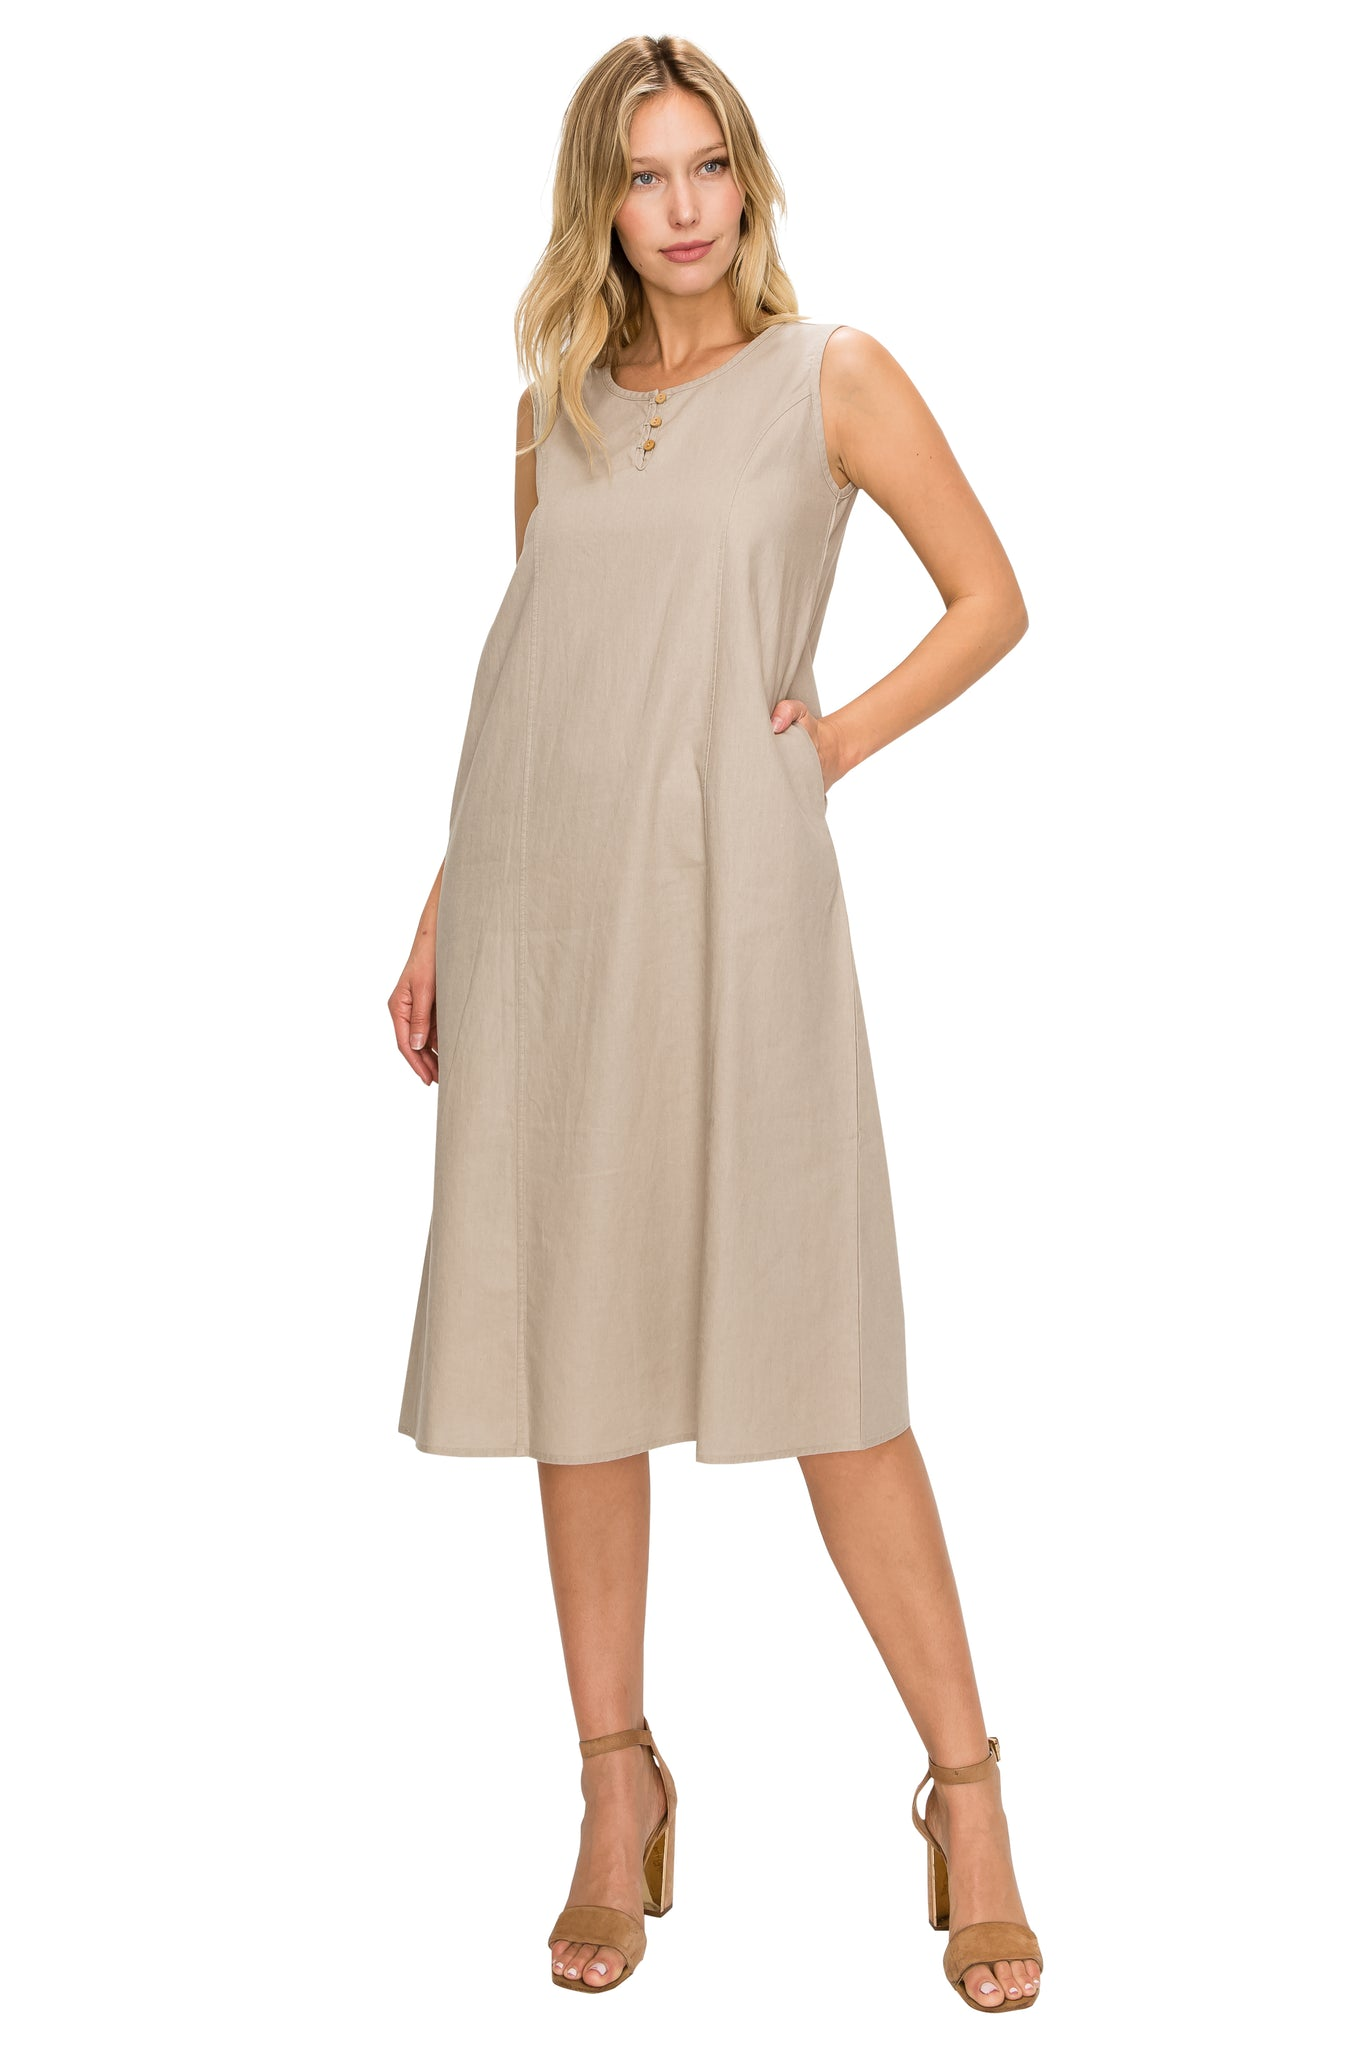 Natural Linen Midi-Dress - Poplooks